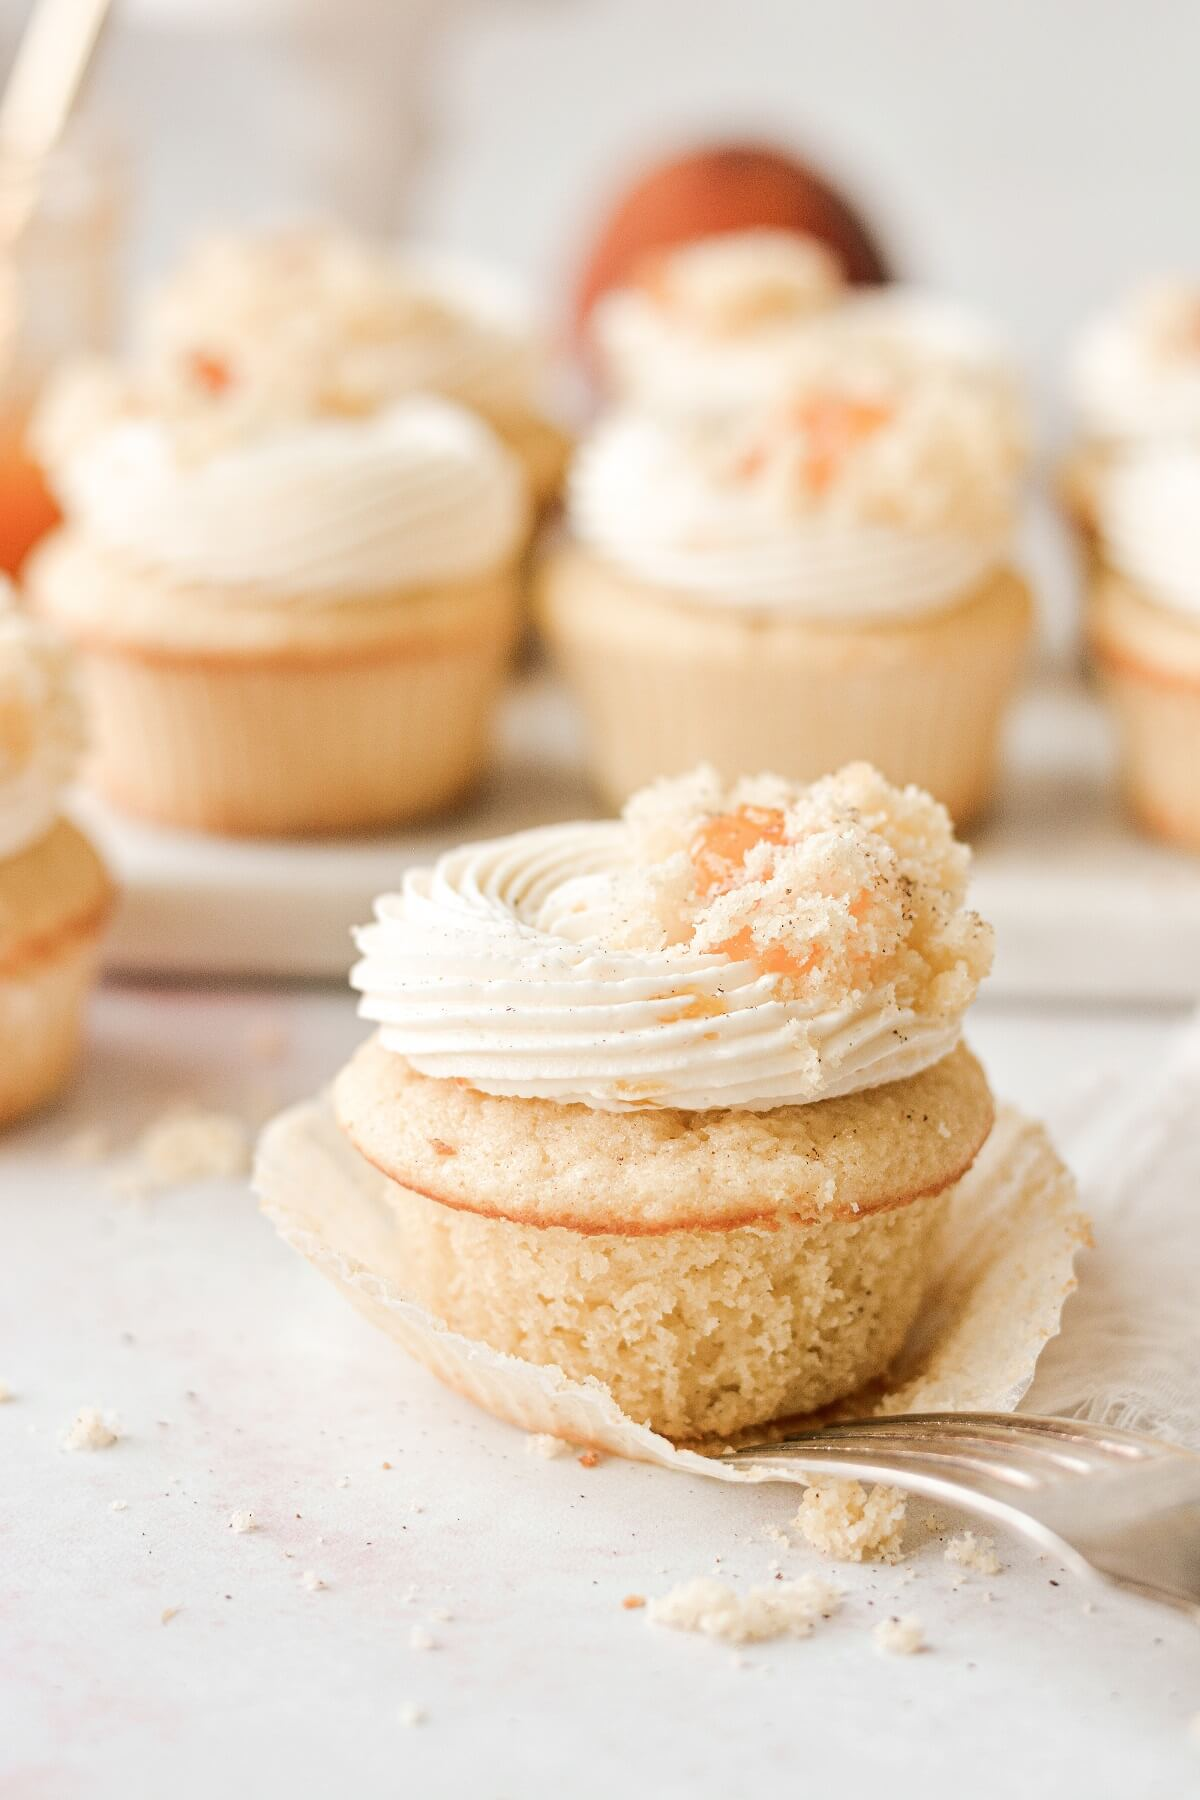 A peach cupcake with the wrapper opened.